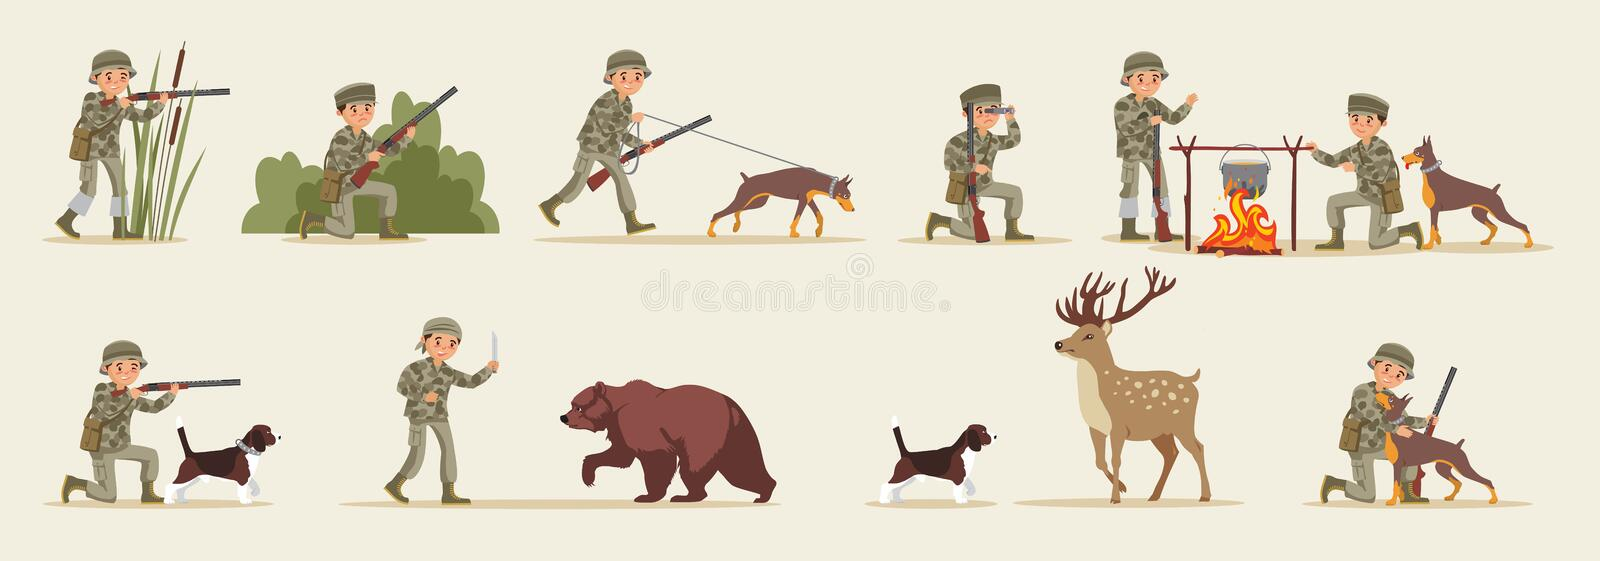 Hunting Elements Set. With hunters in different situations food cooking dog bear and deer isolated vector illustration royalty free illustration